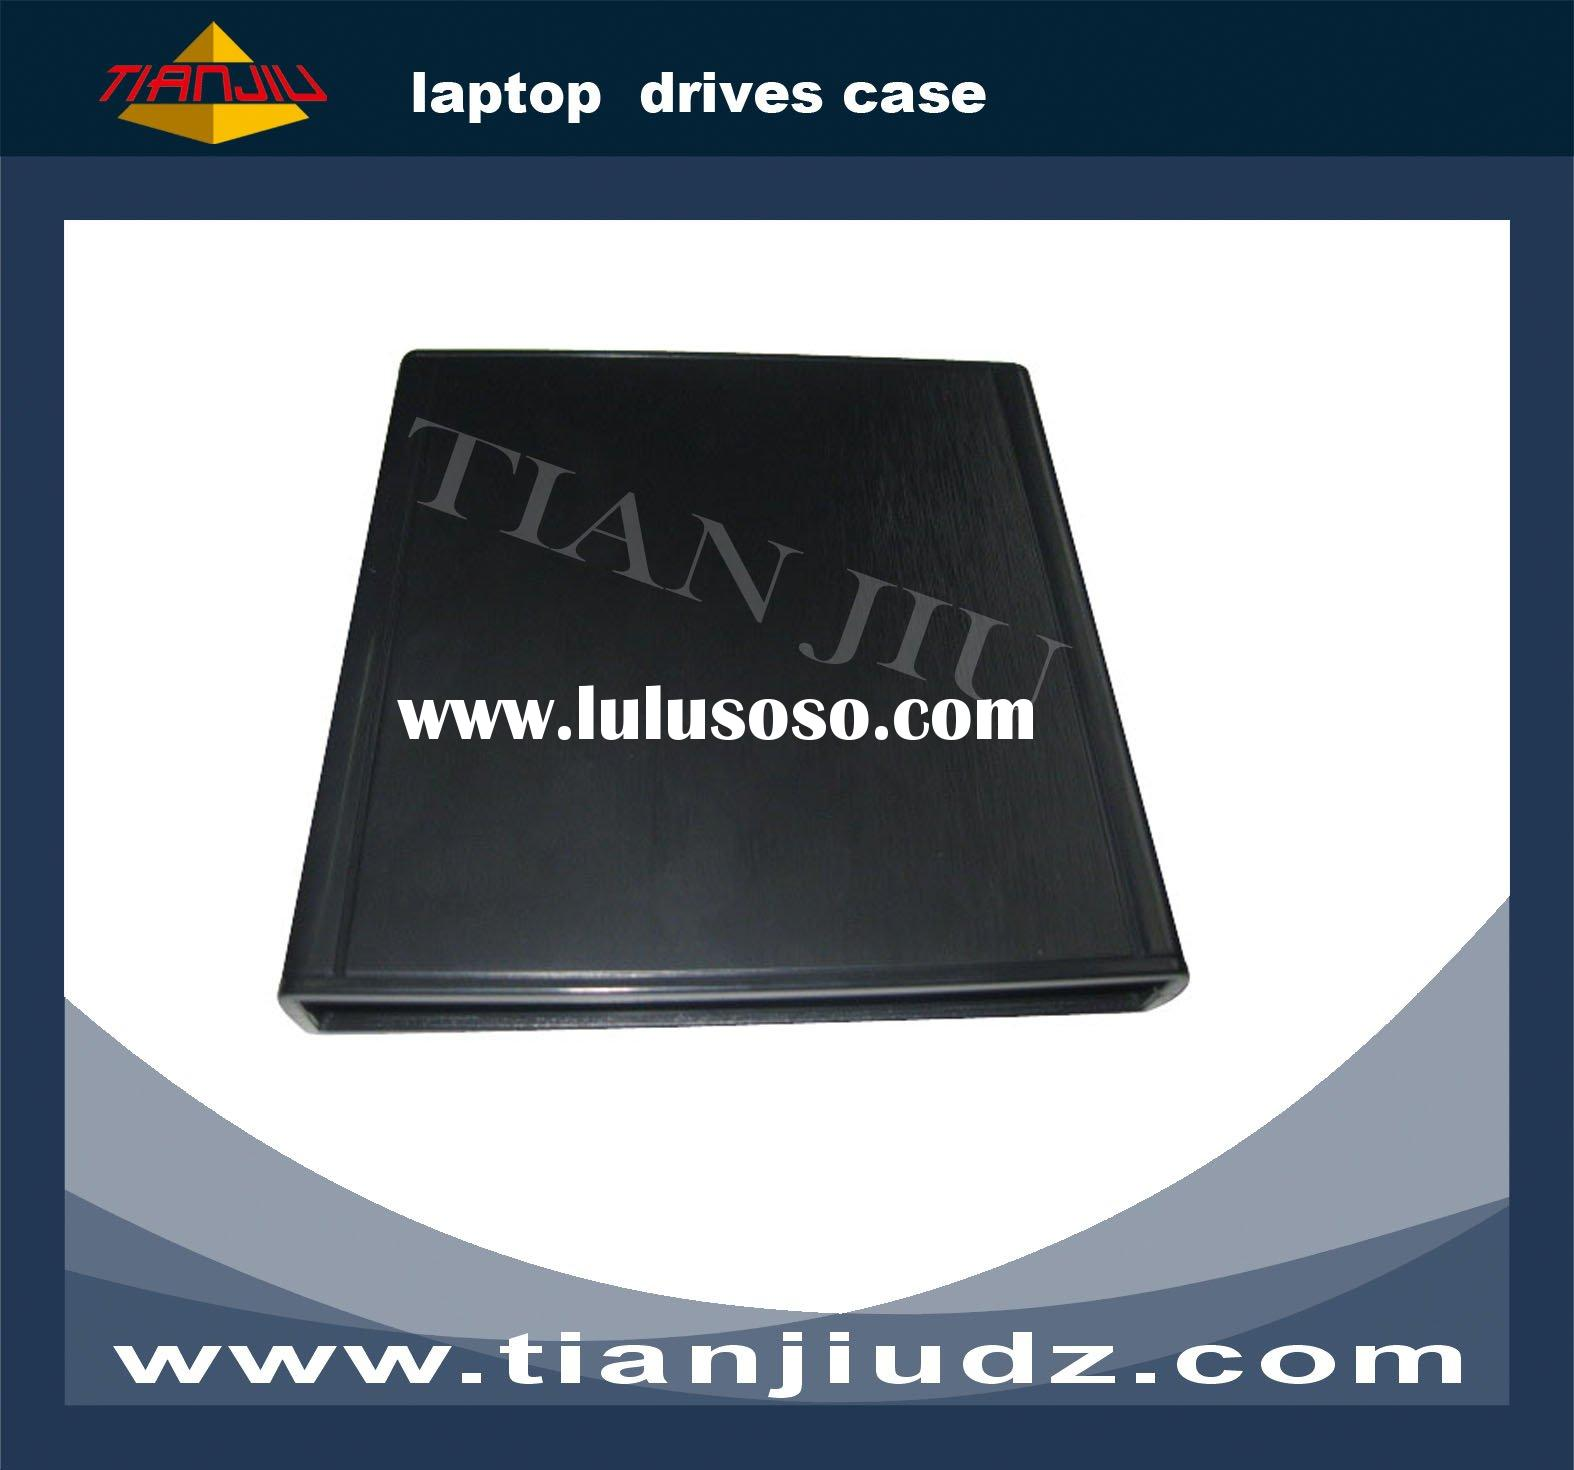 USB 2.0 external portable outdoor CASE FOR LAPTOP DVD RW ROM ,CD ROM and Combo Drive